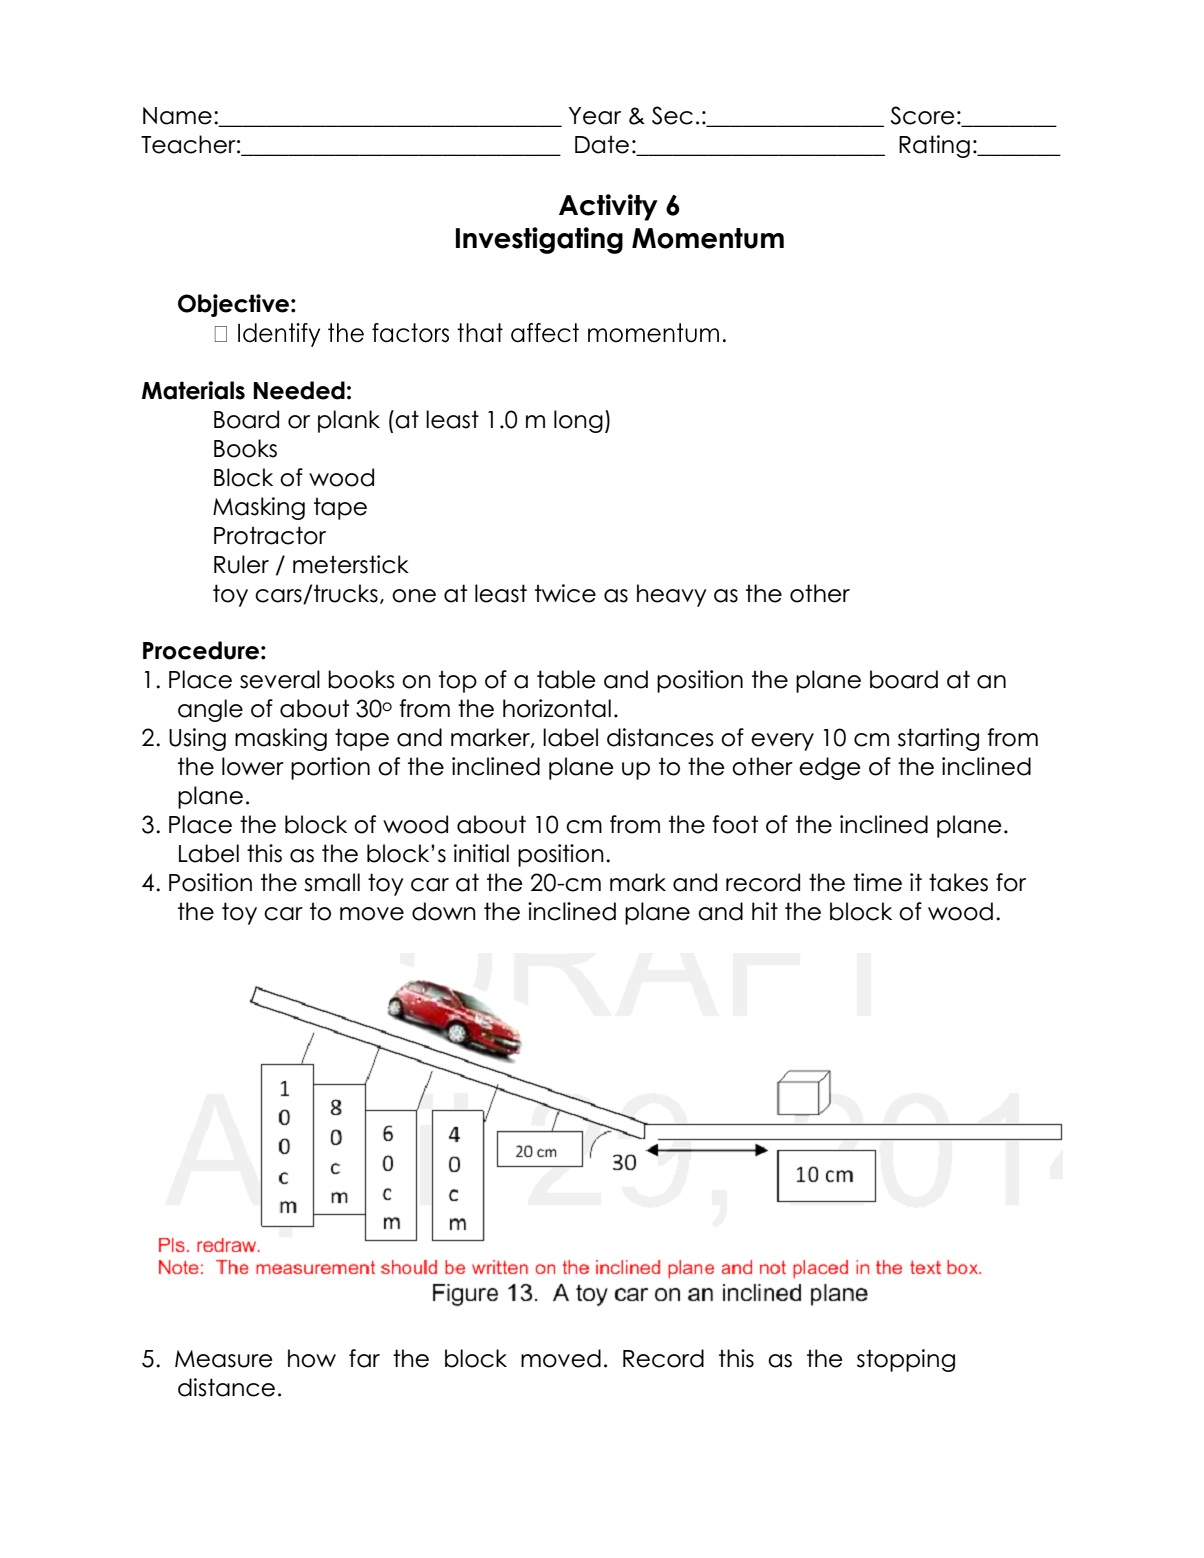 Science Concepts And Questions K To 12 Forces And